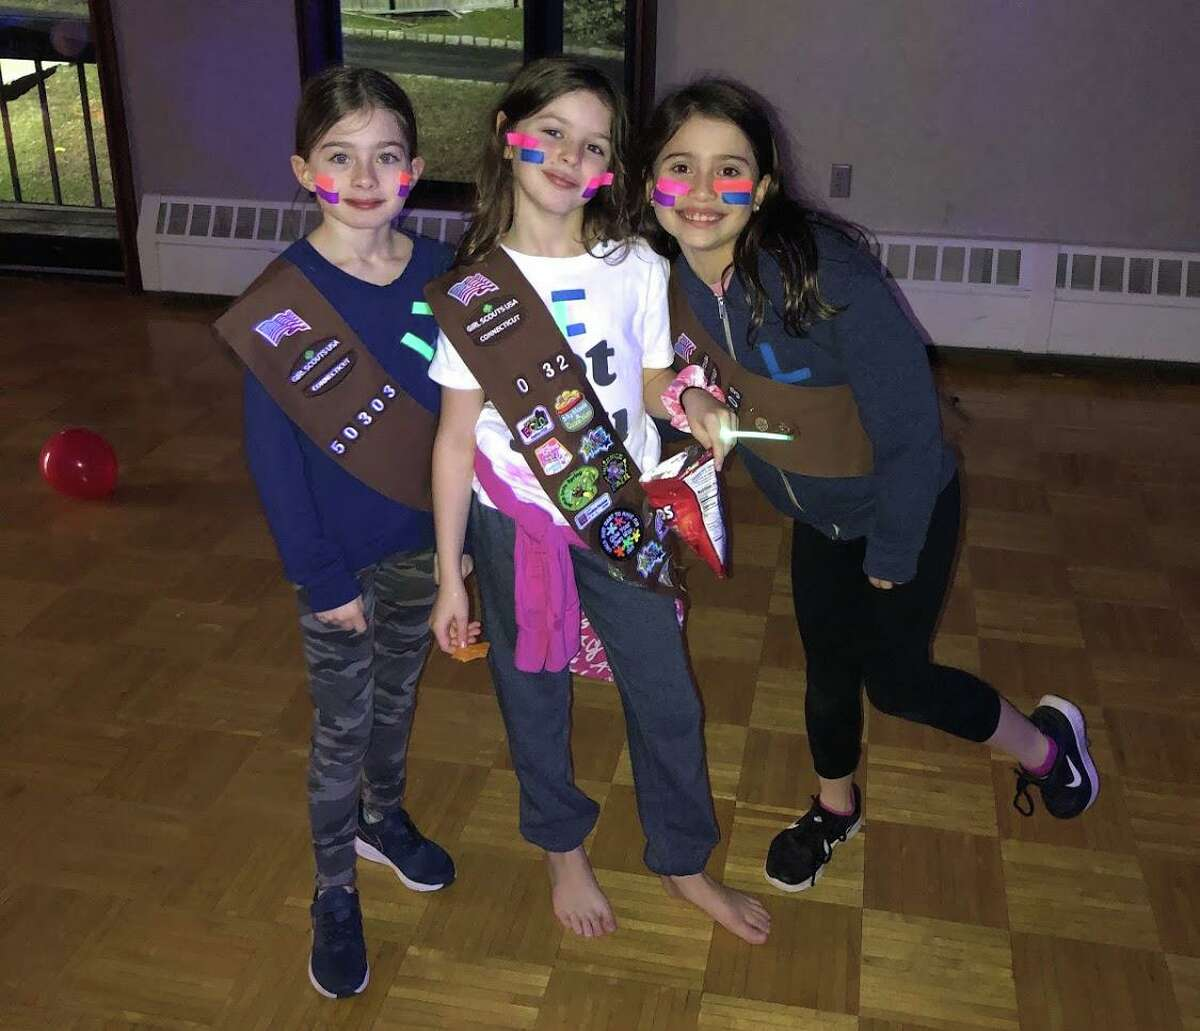 Brownies Chloe Culver, Caroline Collins and Liana Zapata, who are in Girl Scout Troop 50303 at North Street, enjoy the annual K-12 Girl Scout 'Thinking Day' event at the YWCA. This year's theme was Diversity, Inclusion, Equity .